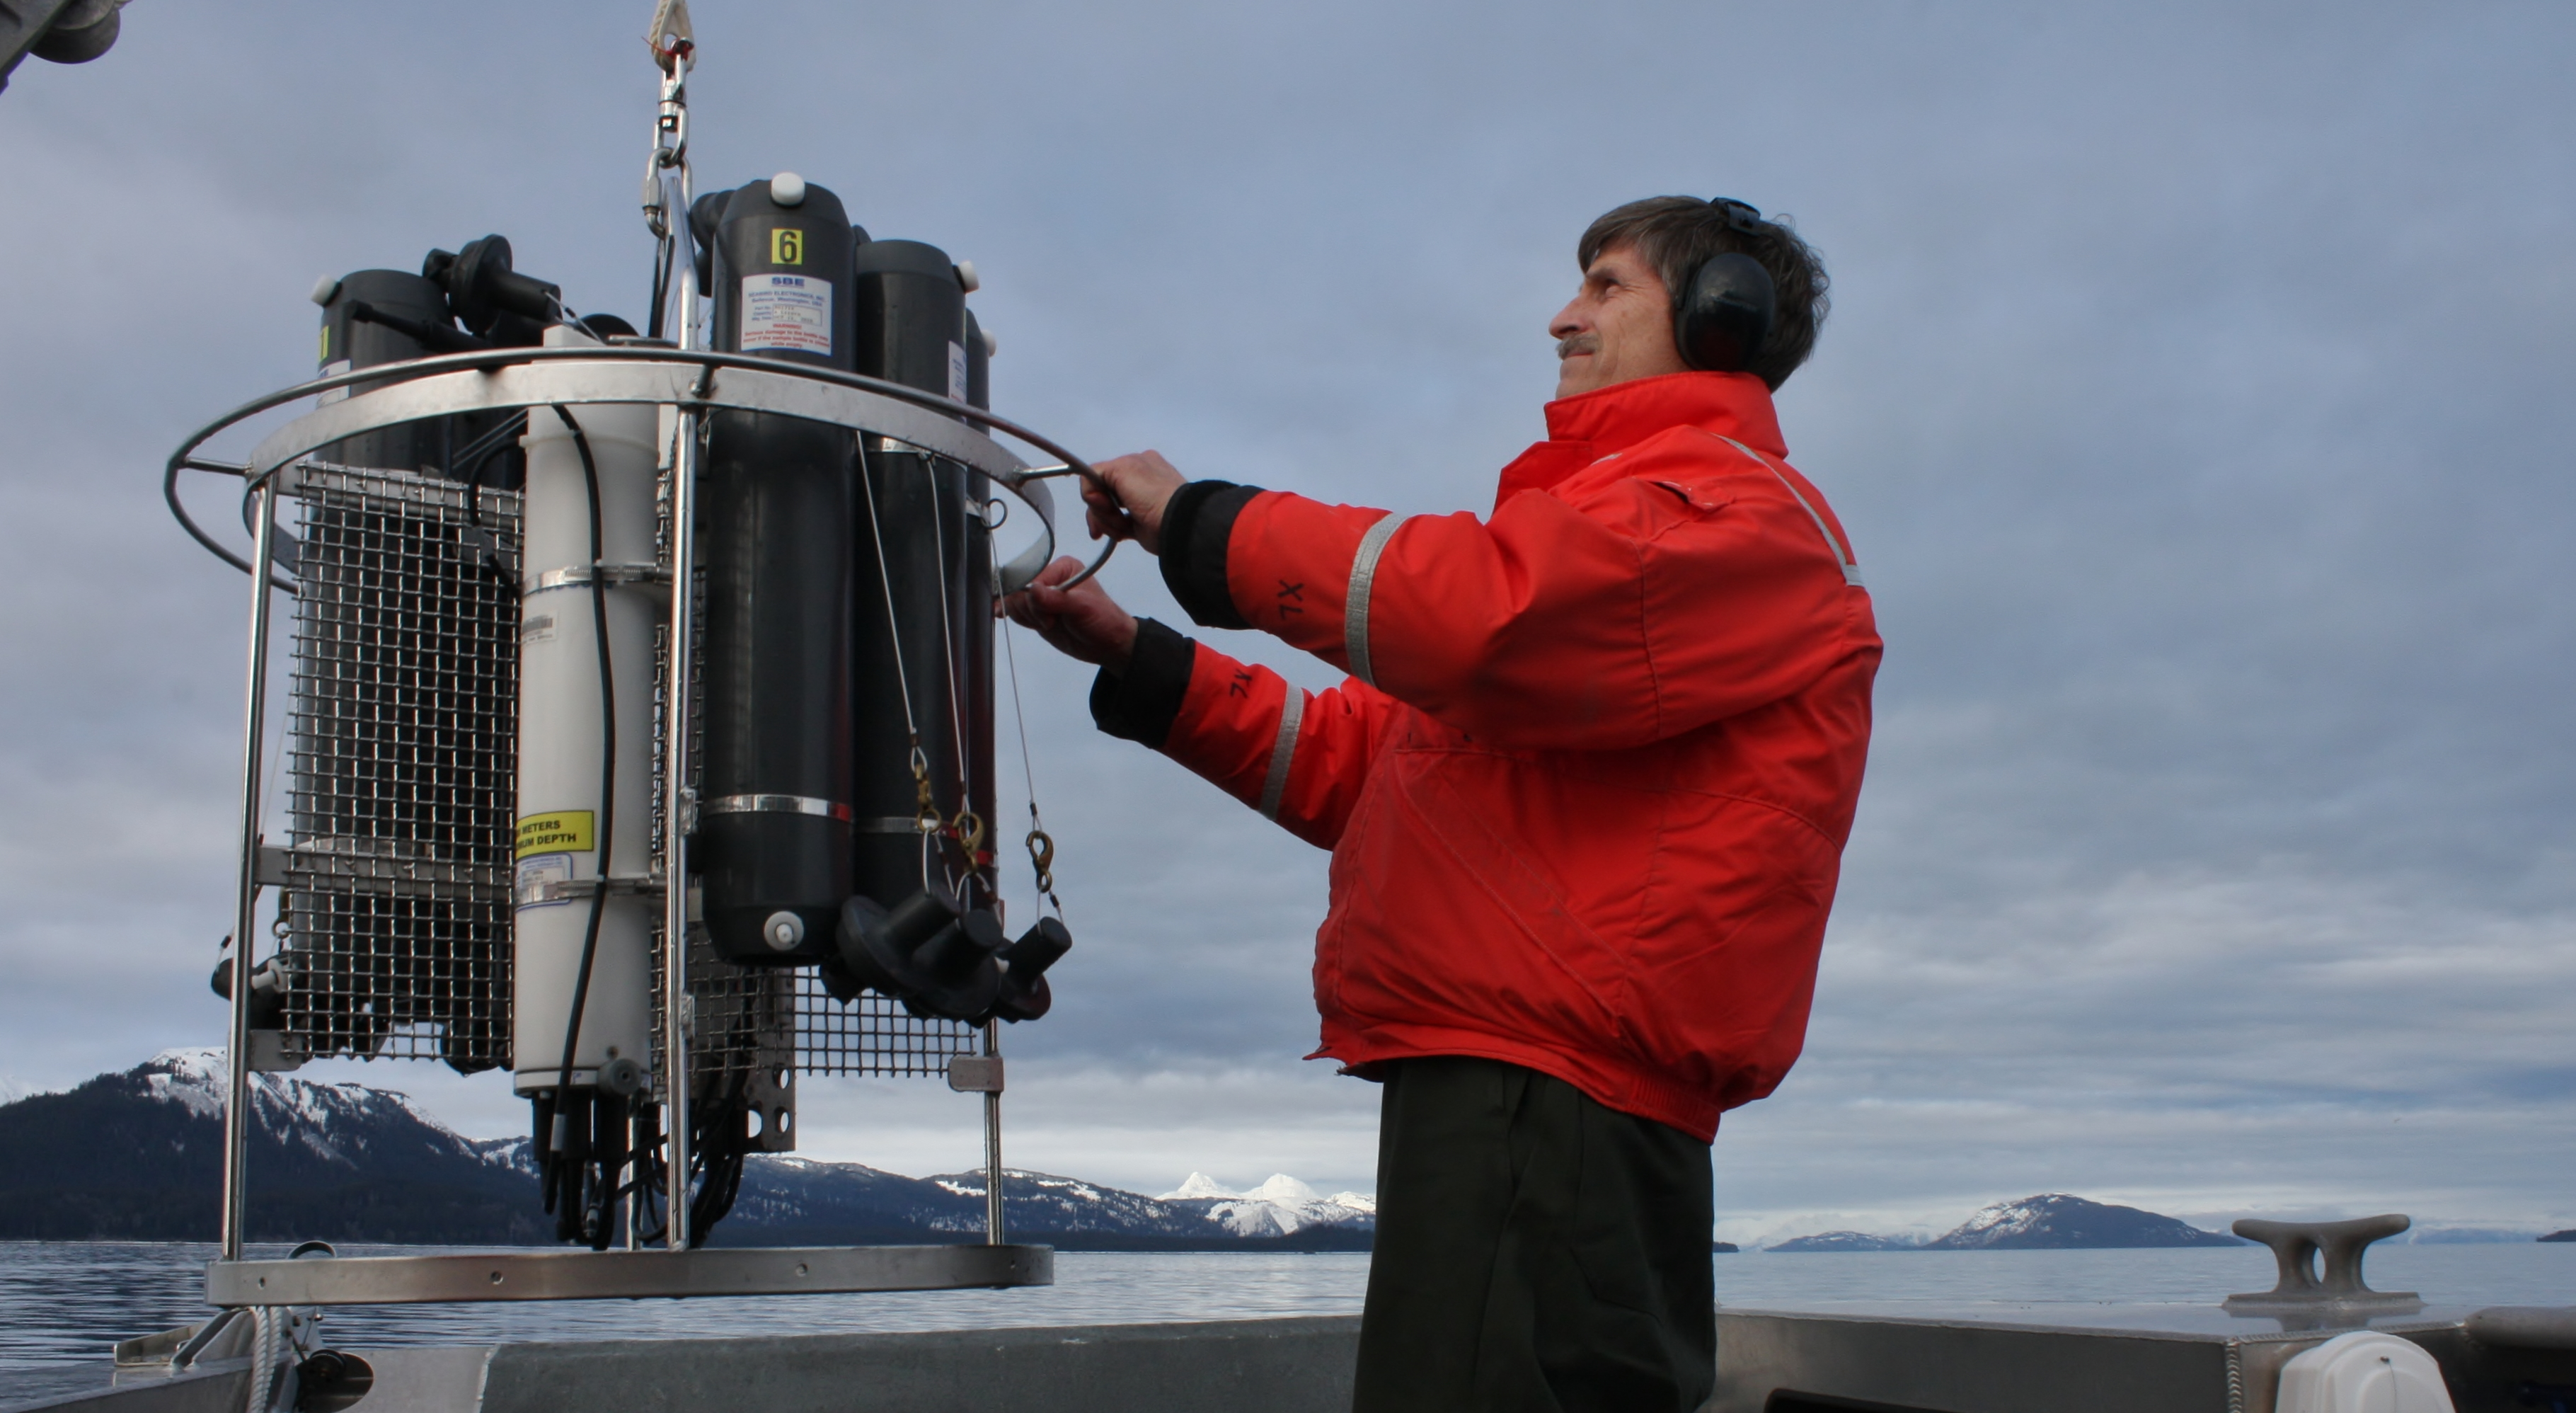 A researcher with ceanography survey equipment